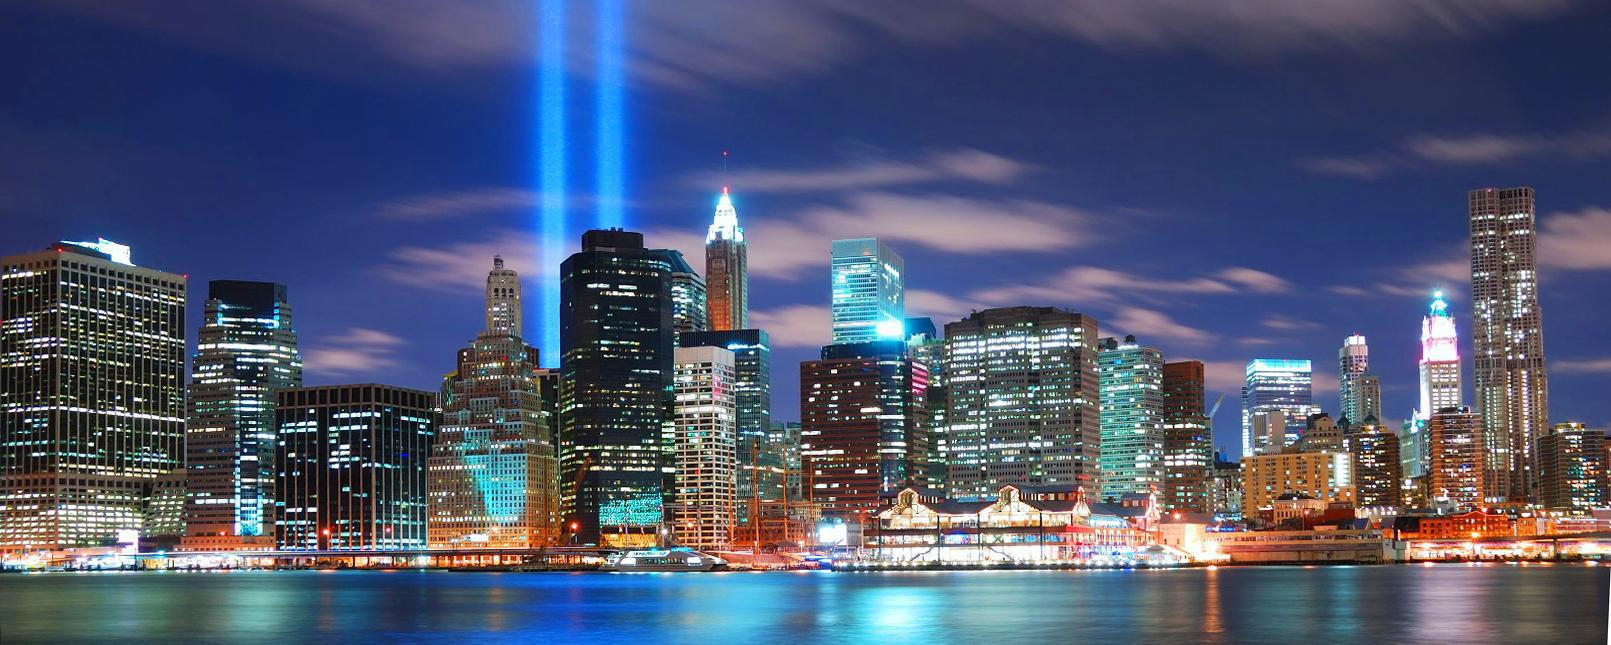 Amérique, Amérique du Nord, Etats-Unis, USA, Manhattan, New York, ground zero